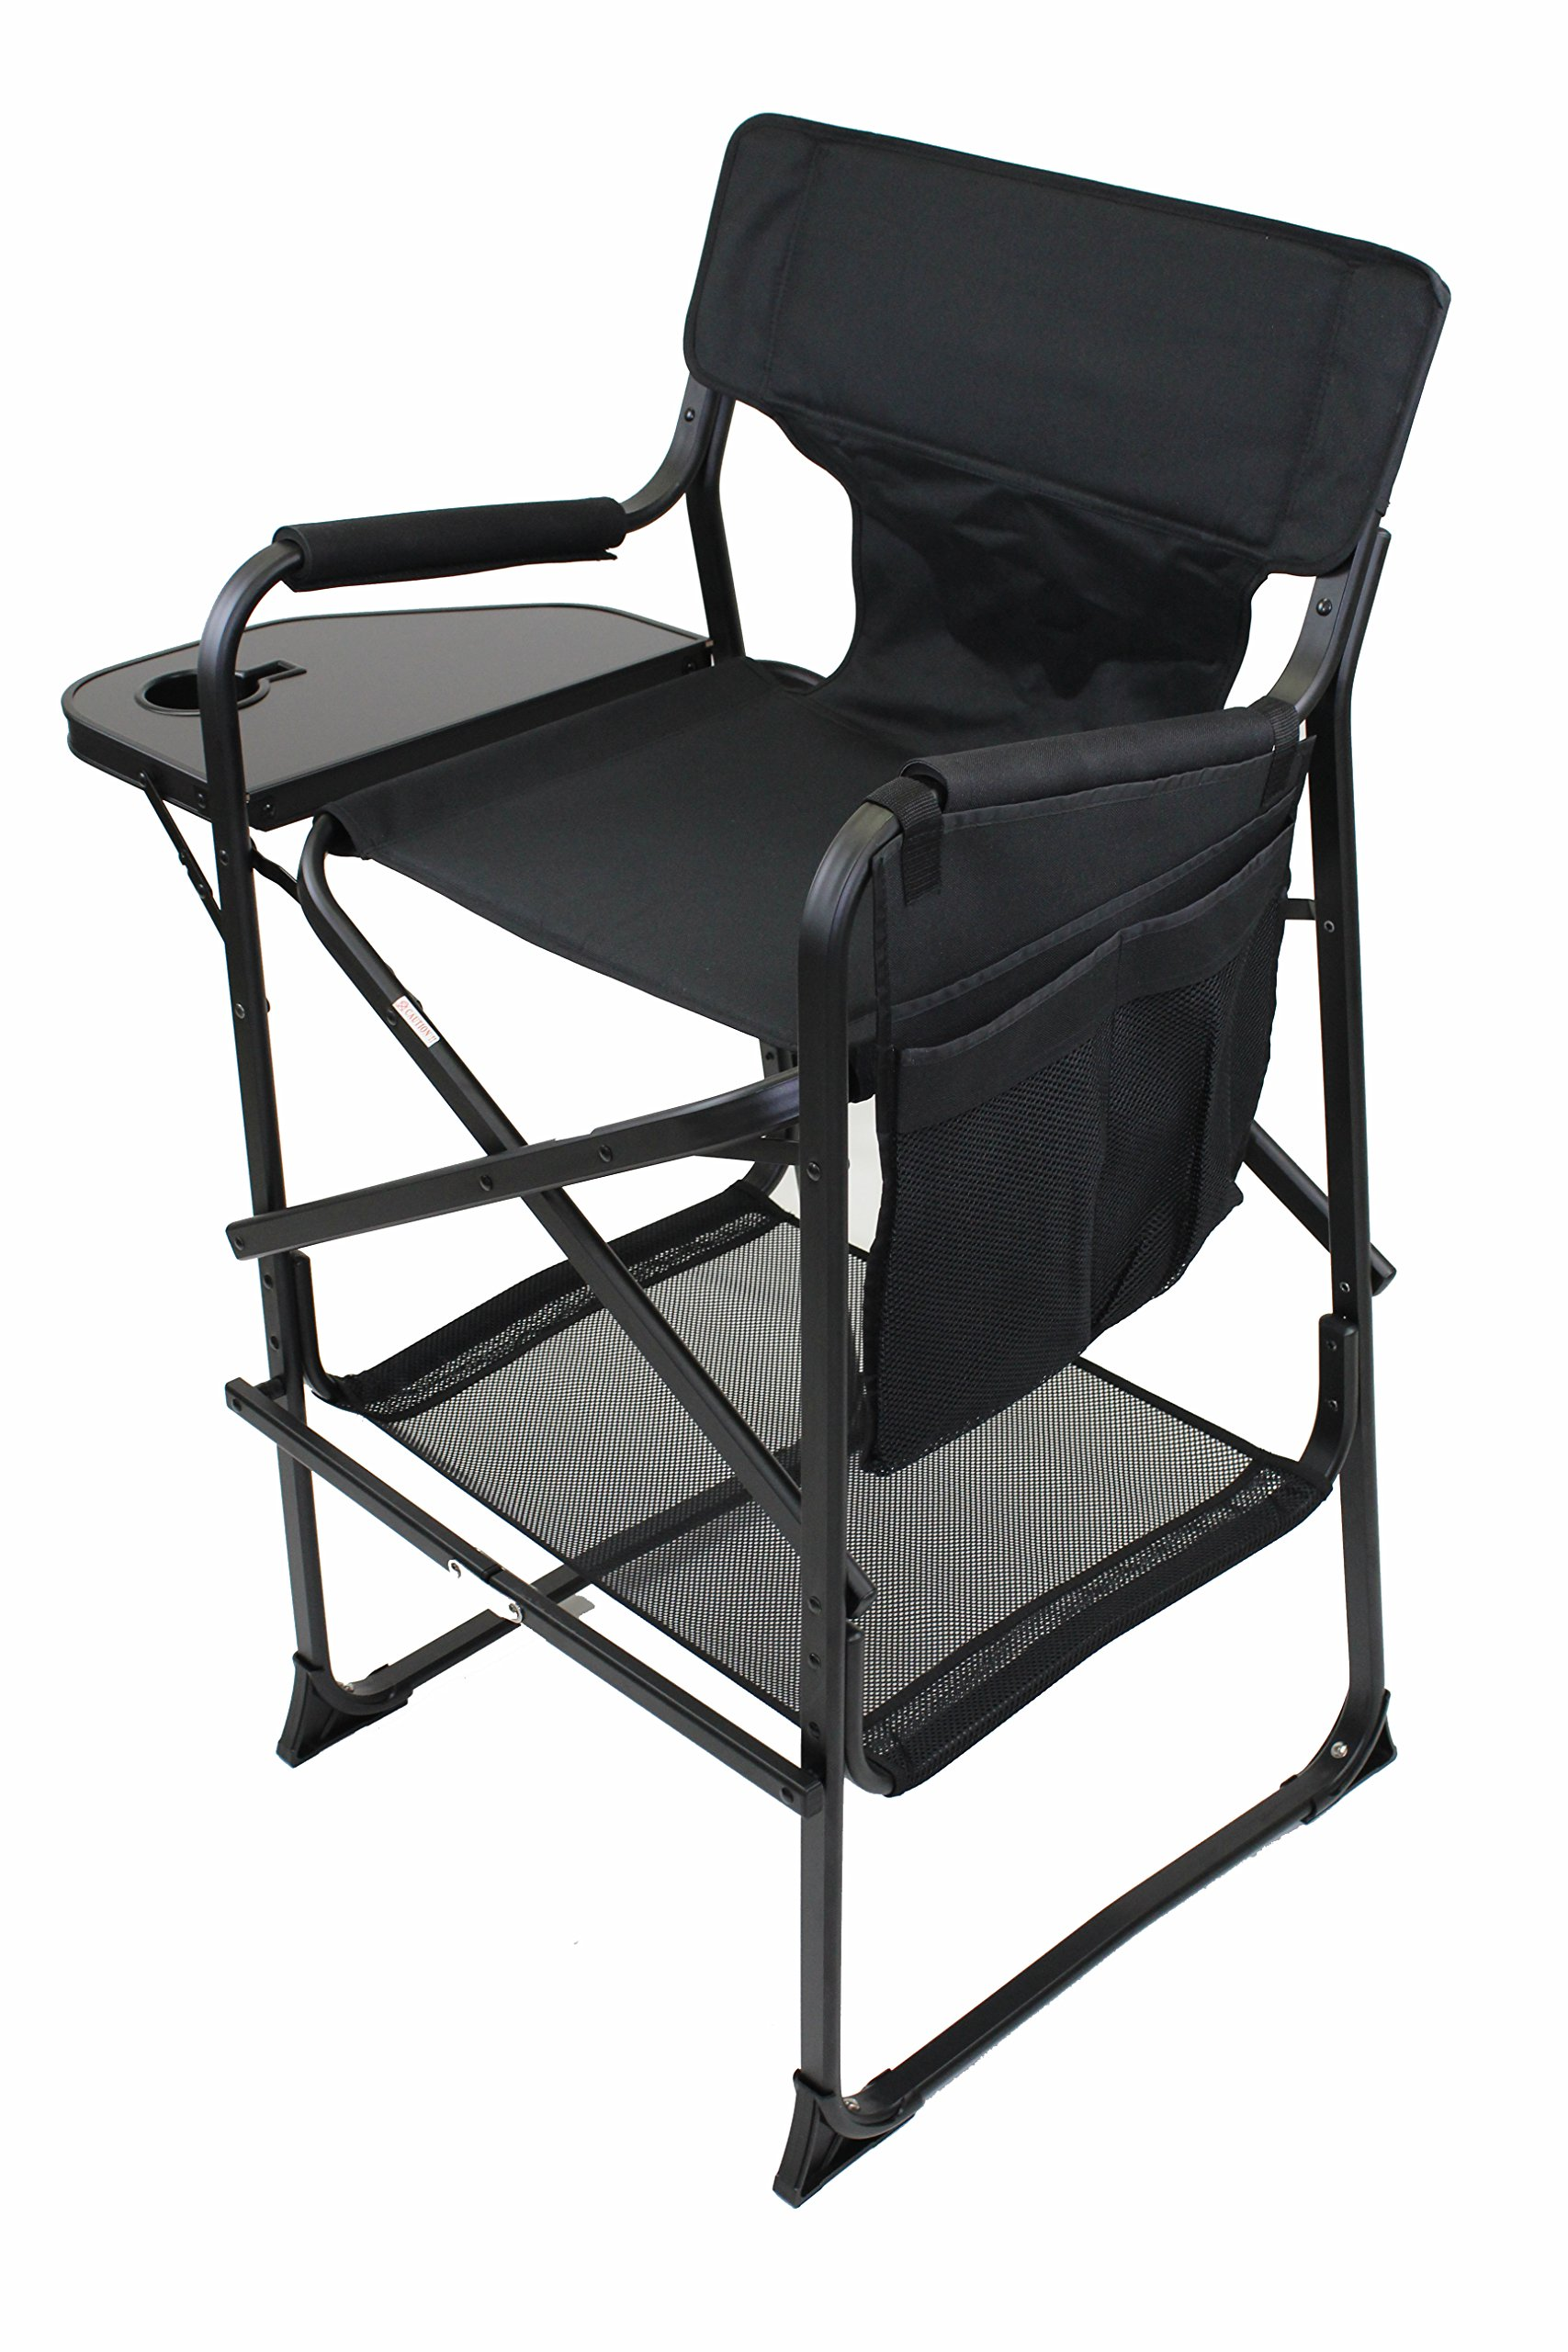 World Outdoor Products LIGHTWEIGHT PROFESSIONAL EDITION Tall Directors Chair Side Table with Cup Holder, Automatic Footrest and Side Bag by World Outdoor Products (Image #2)